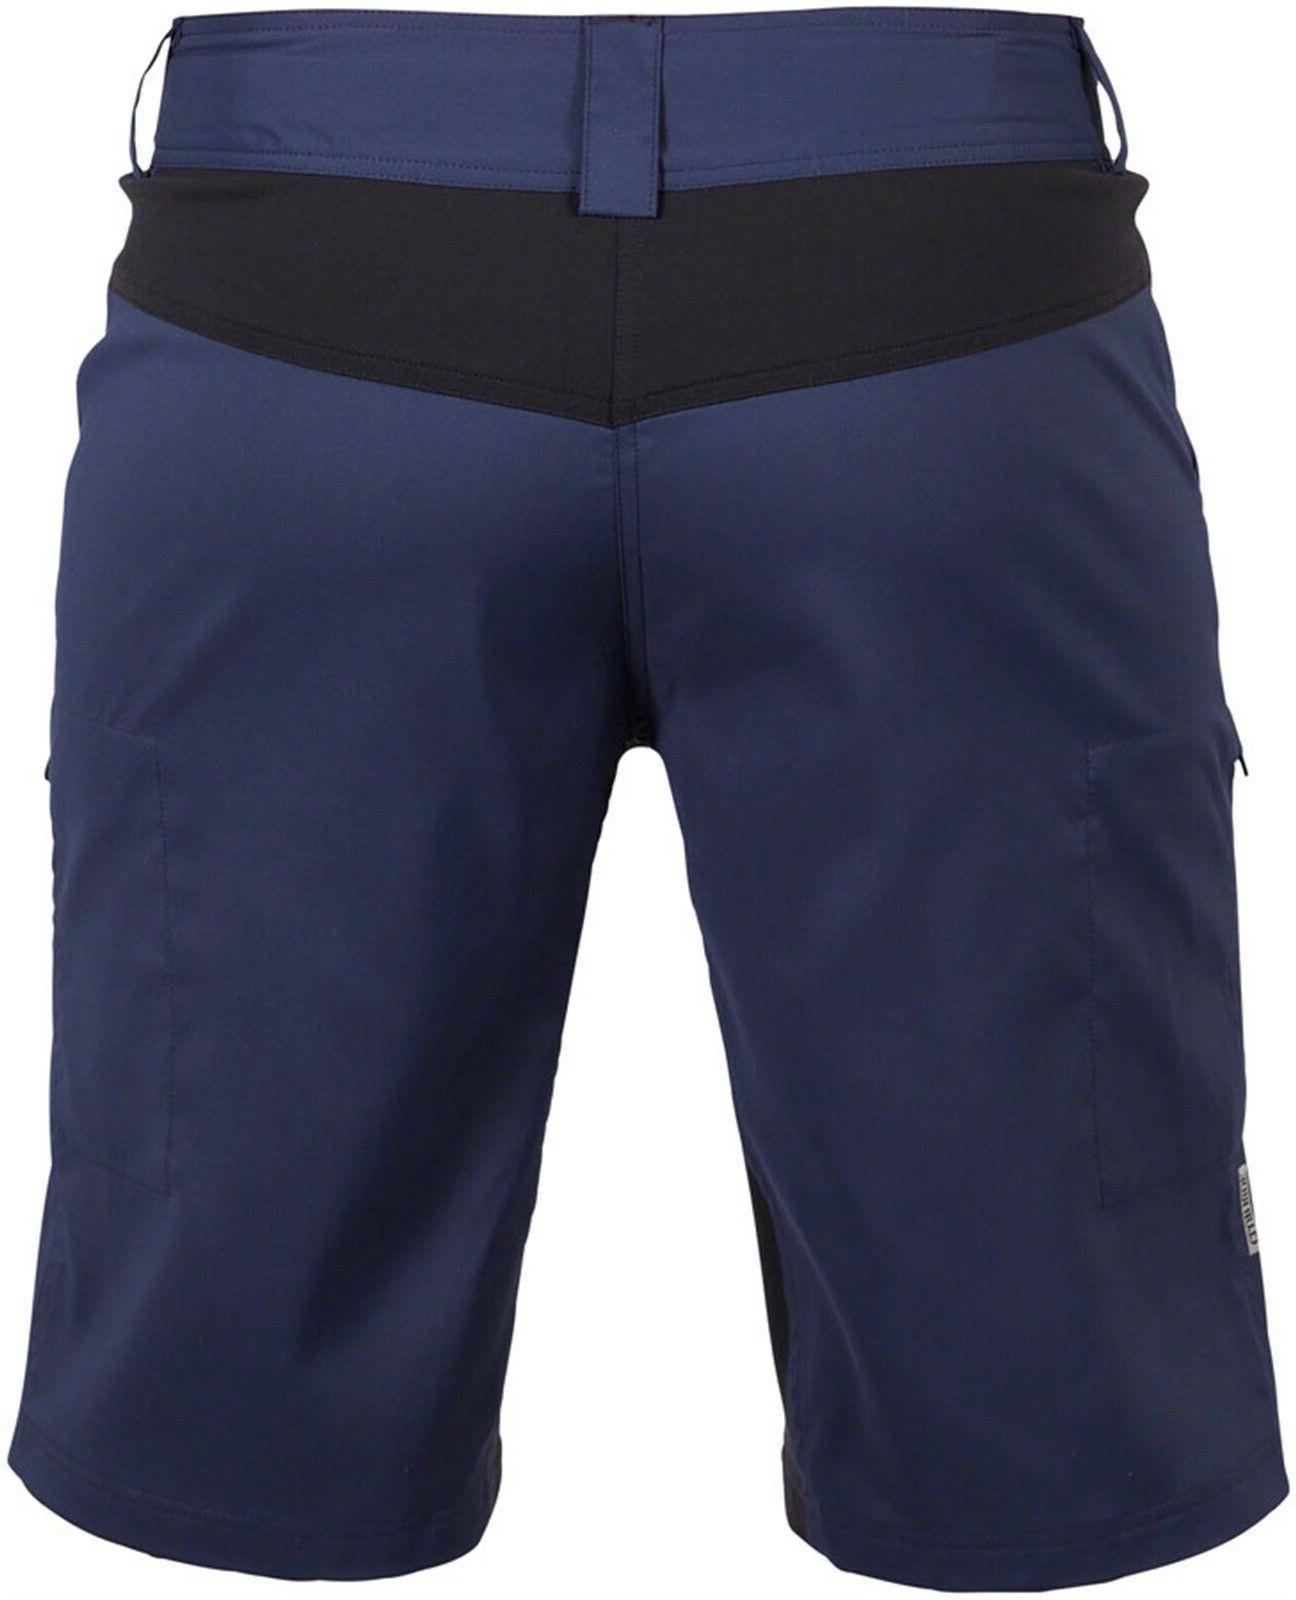 Club Ride Shorts with Liner: LG